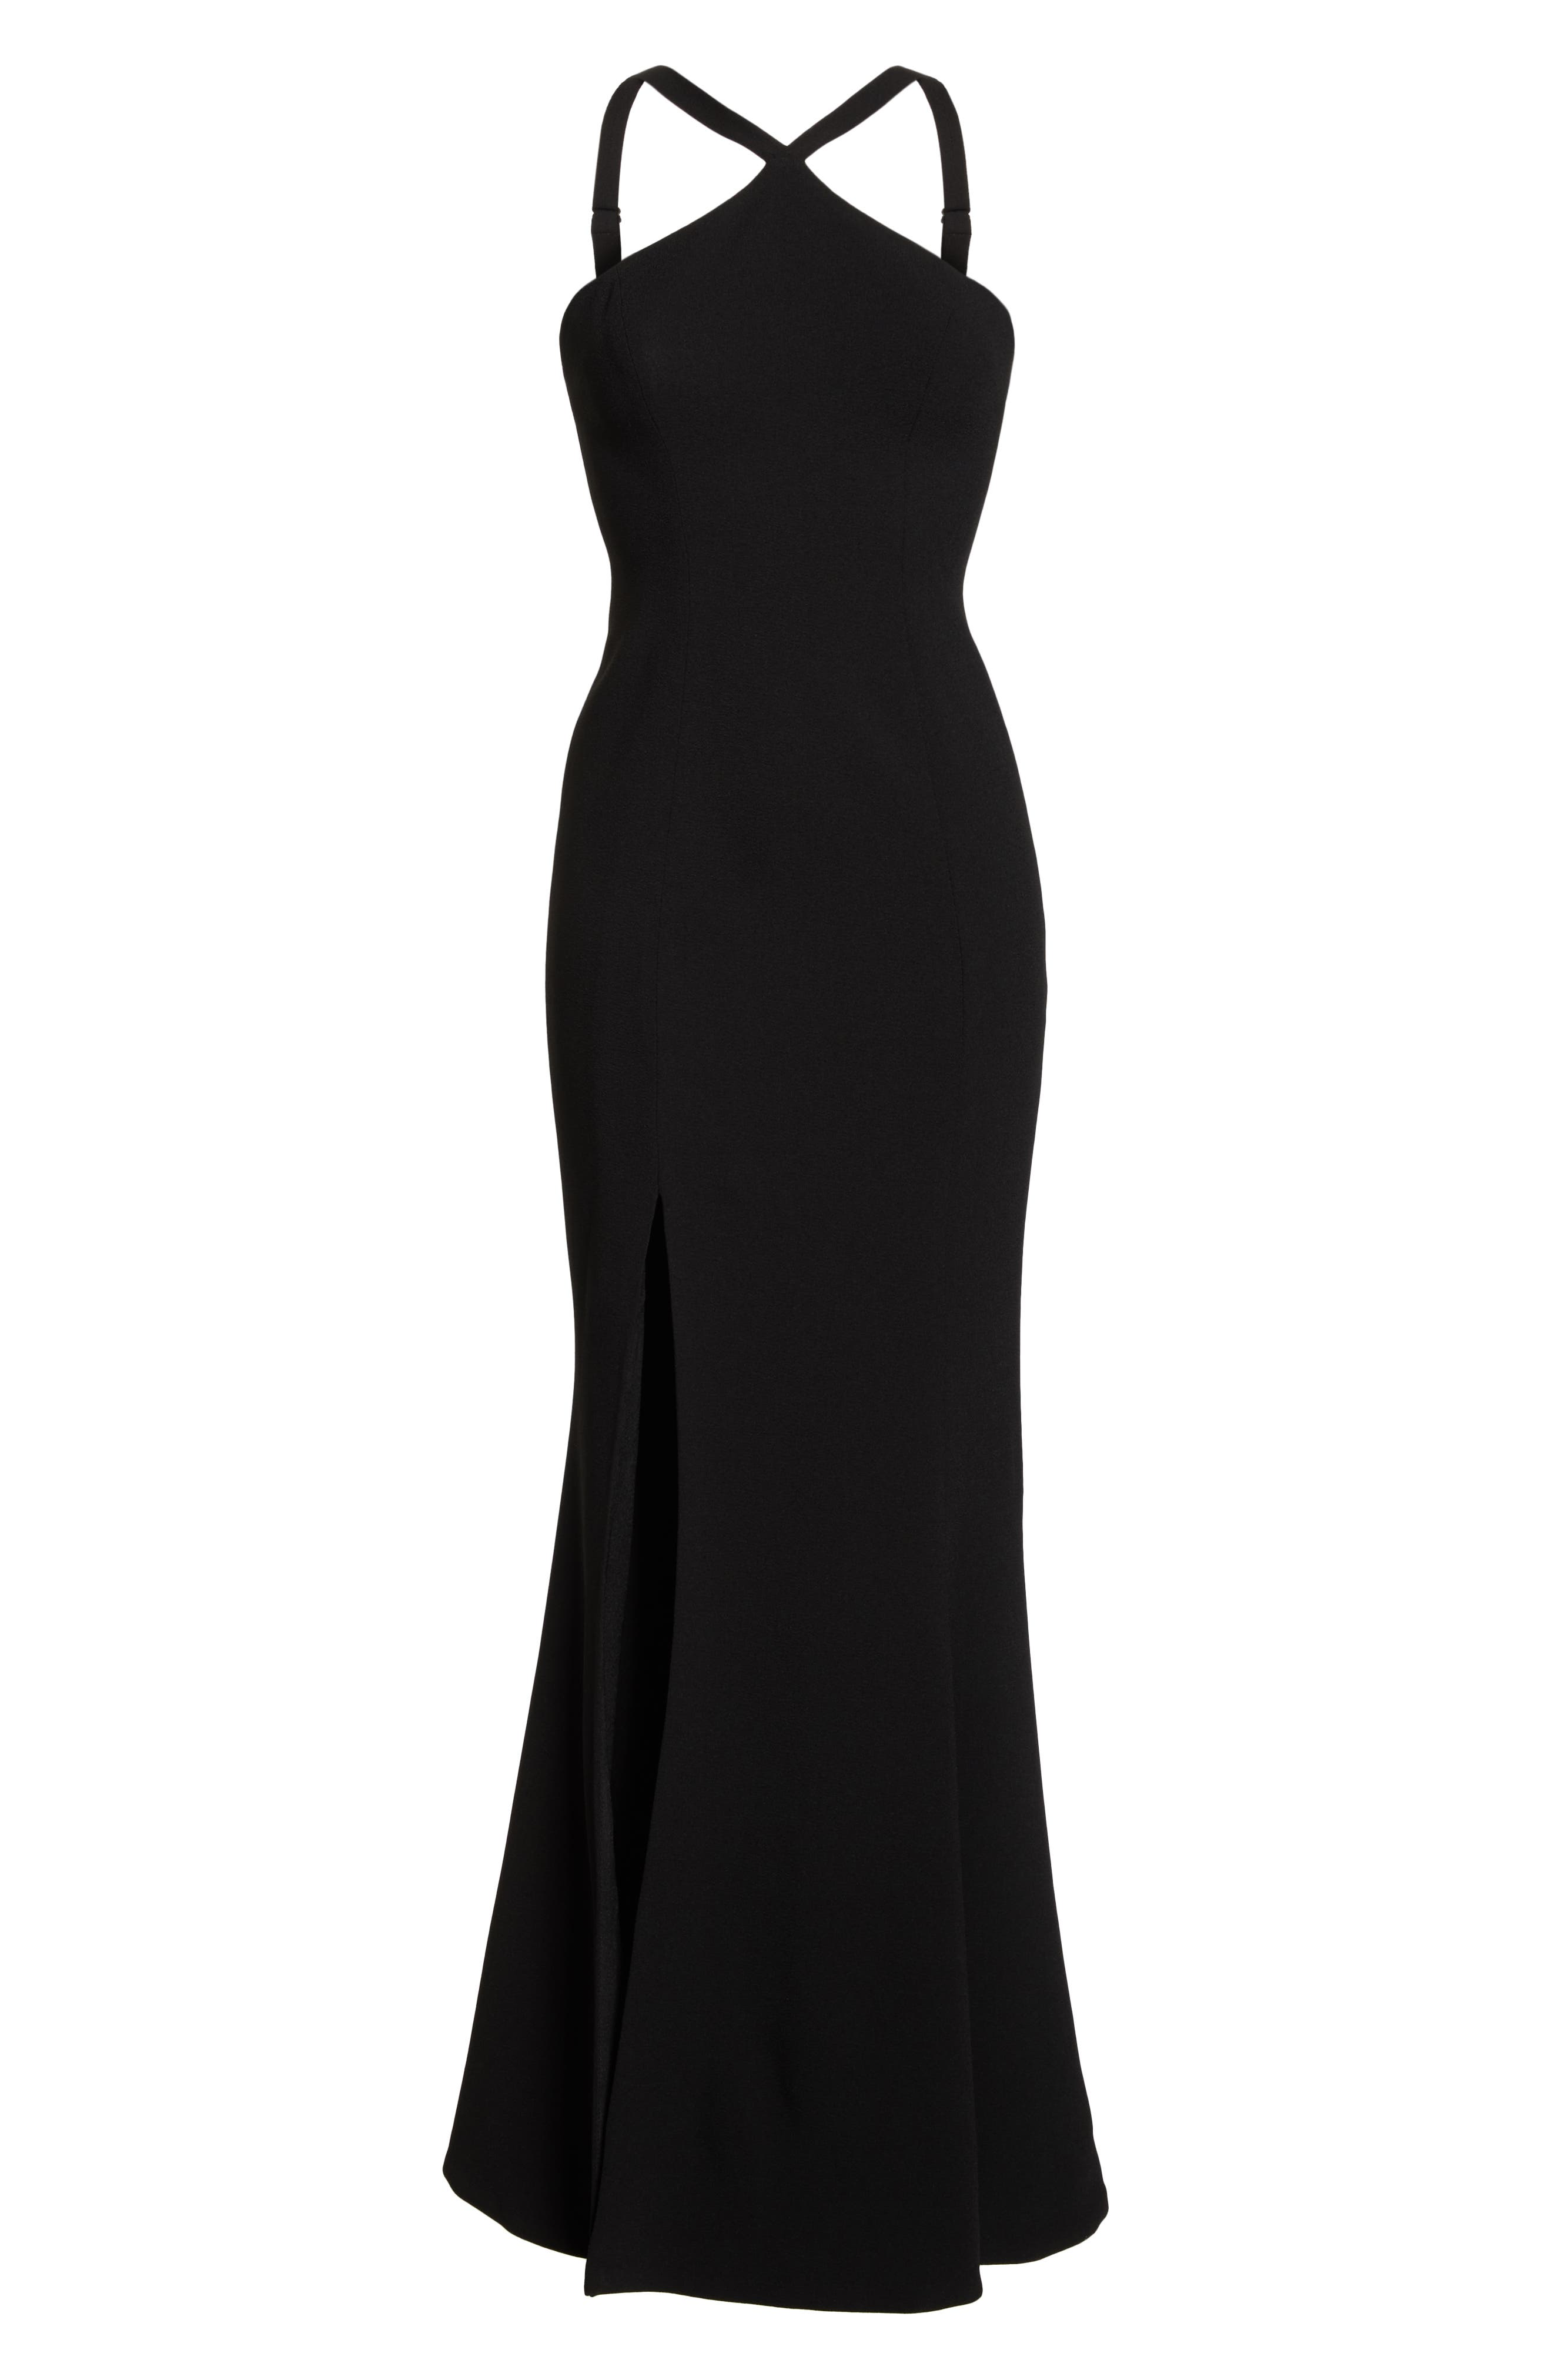 Brianna Halter Style Trumpet Gown,                             Alternate thumbnail 7, color,                             BLACK